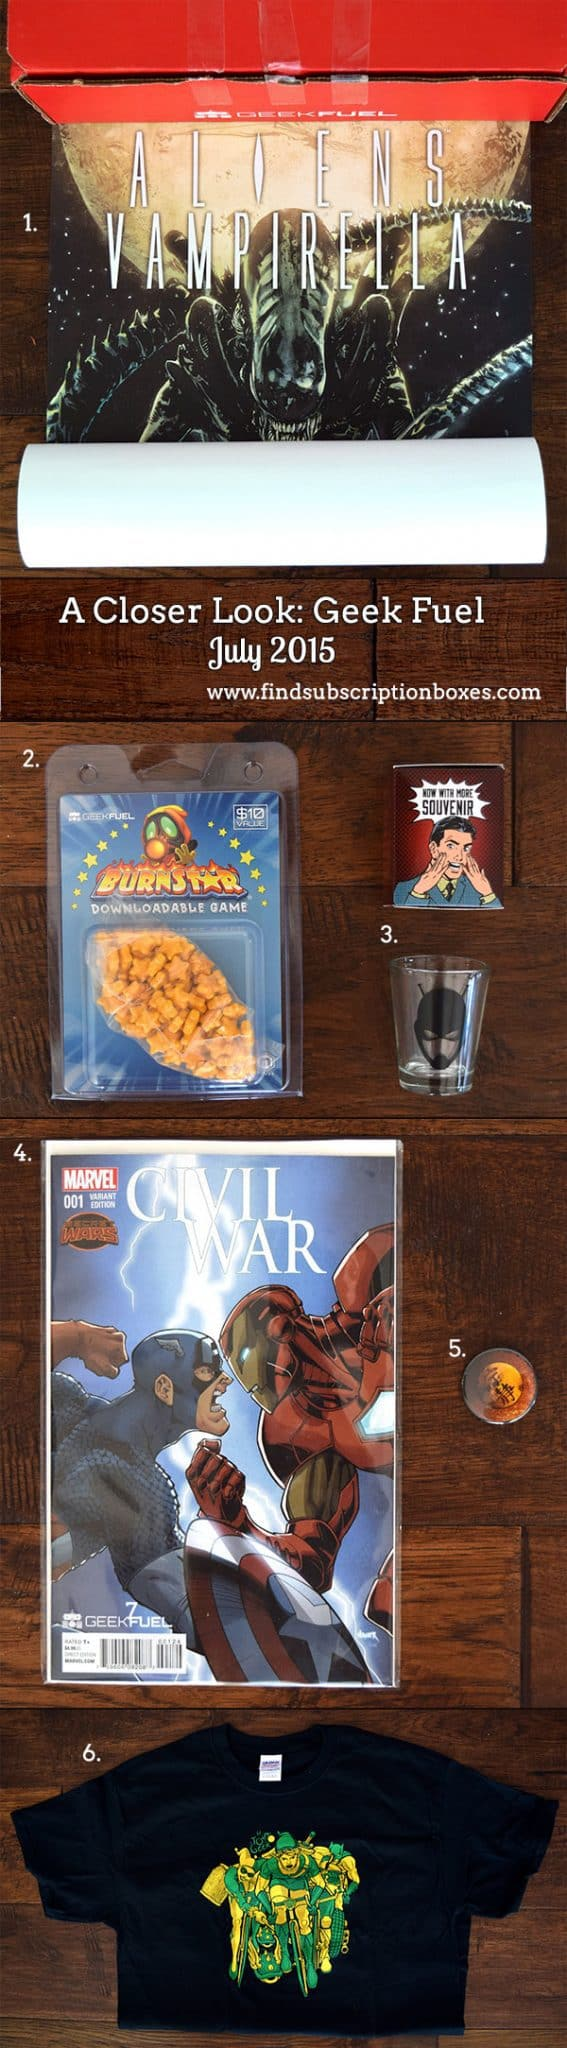 Geek Fuel July 2015 Box Review - Inside the Box